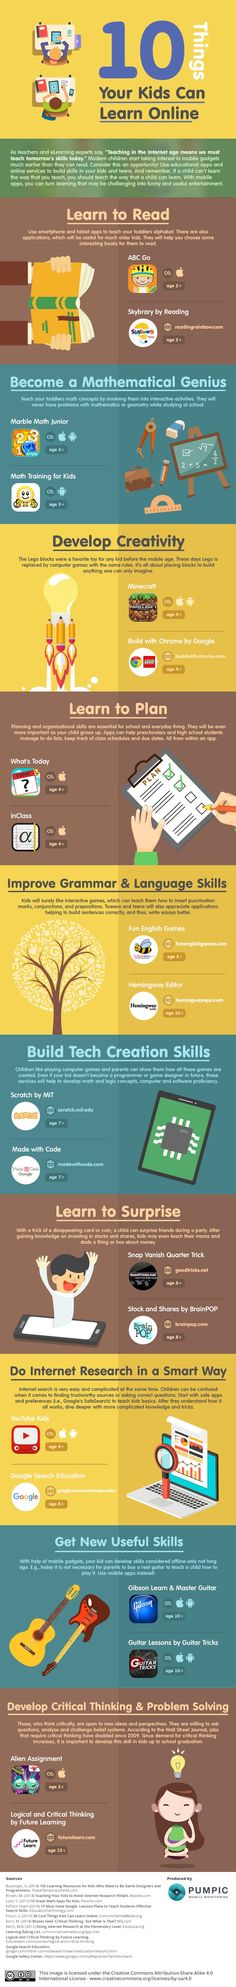 10 Things Your Kids Can Learn Online #[infographic]